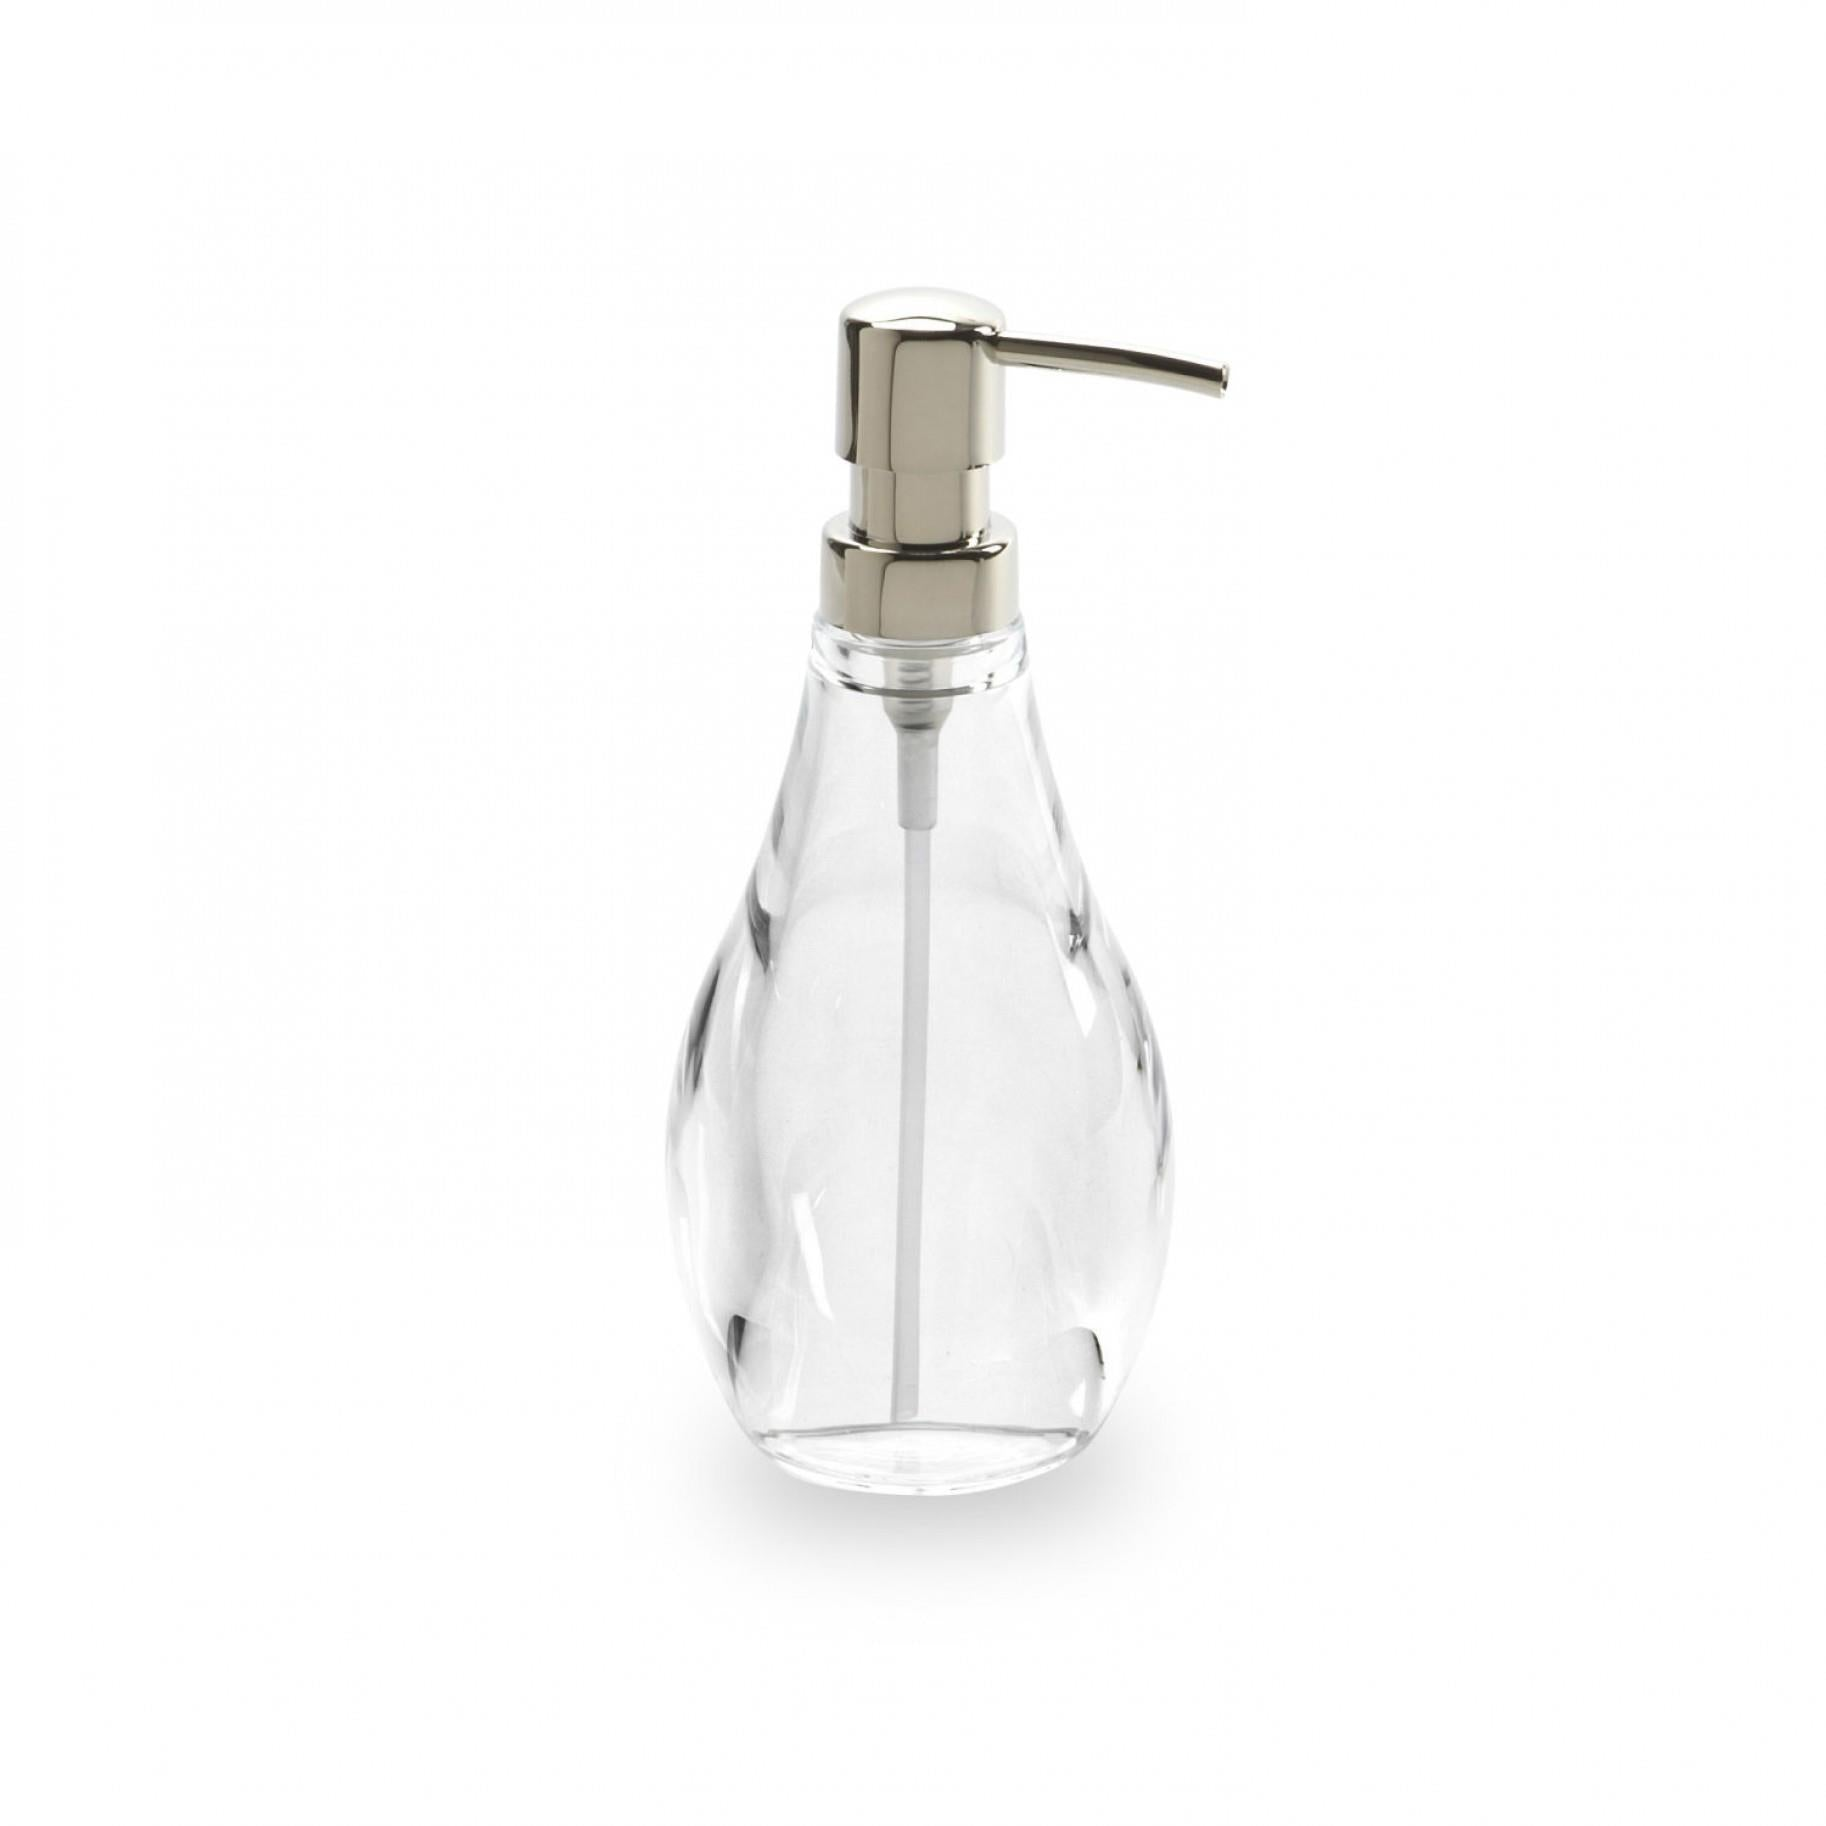 Umbra Droplet Clear Acrylic Soap Pump